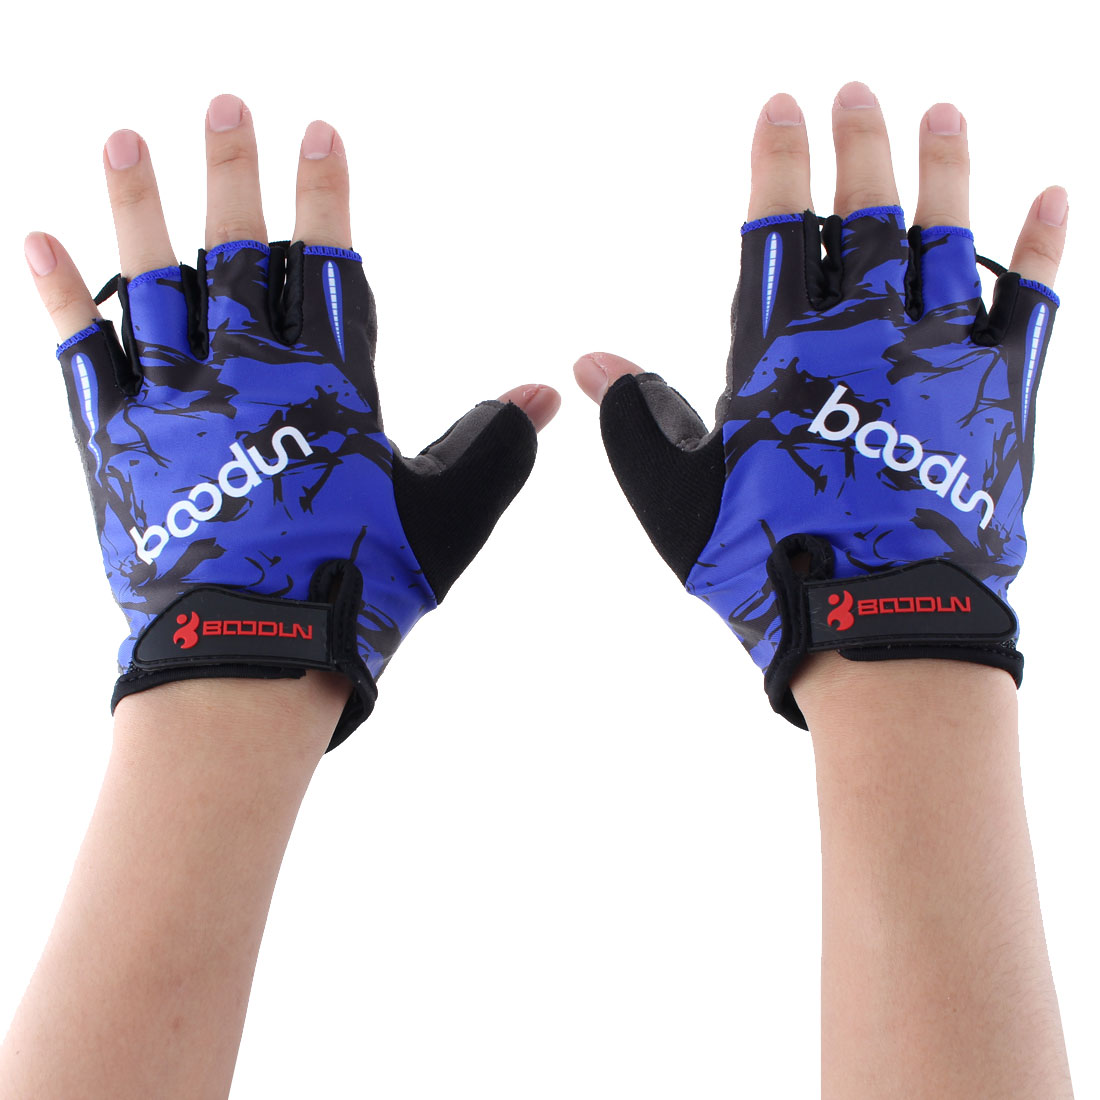 BOODUN Authorized Polyester Exercise Sports Gym Lifting Training Bodybuilding Protector Half Finger Fitness Gloves Blue XL Pair